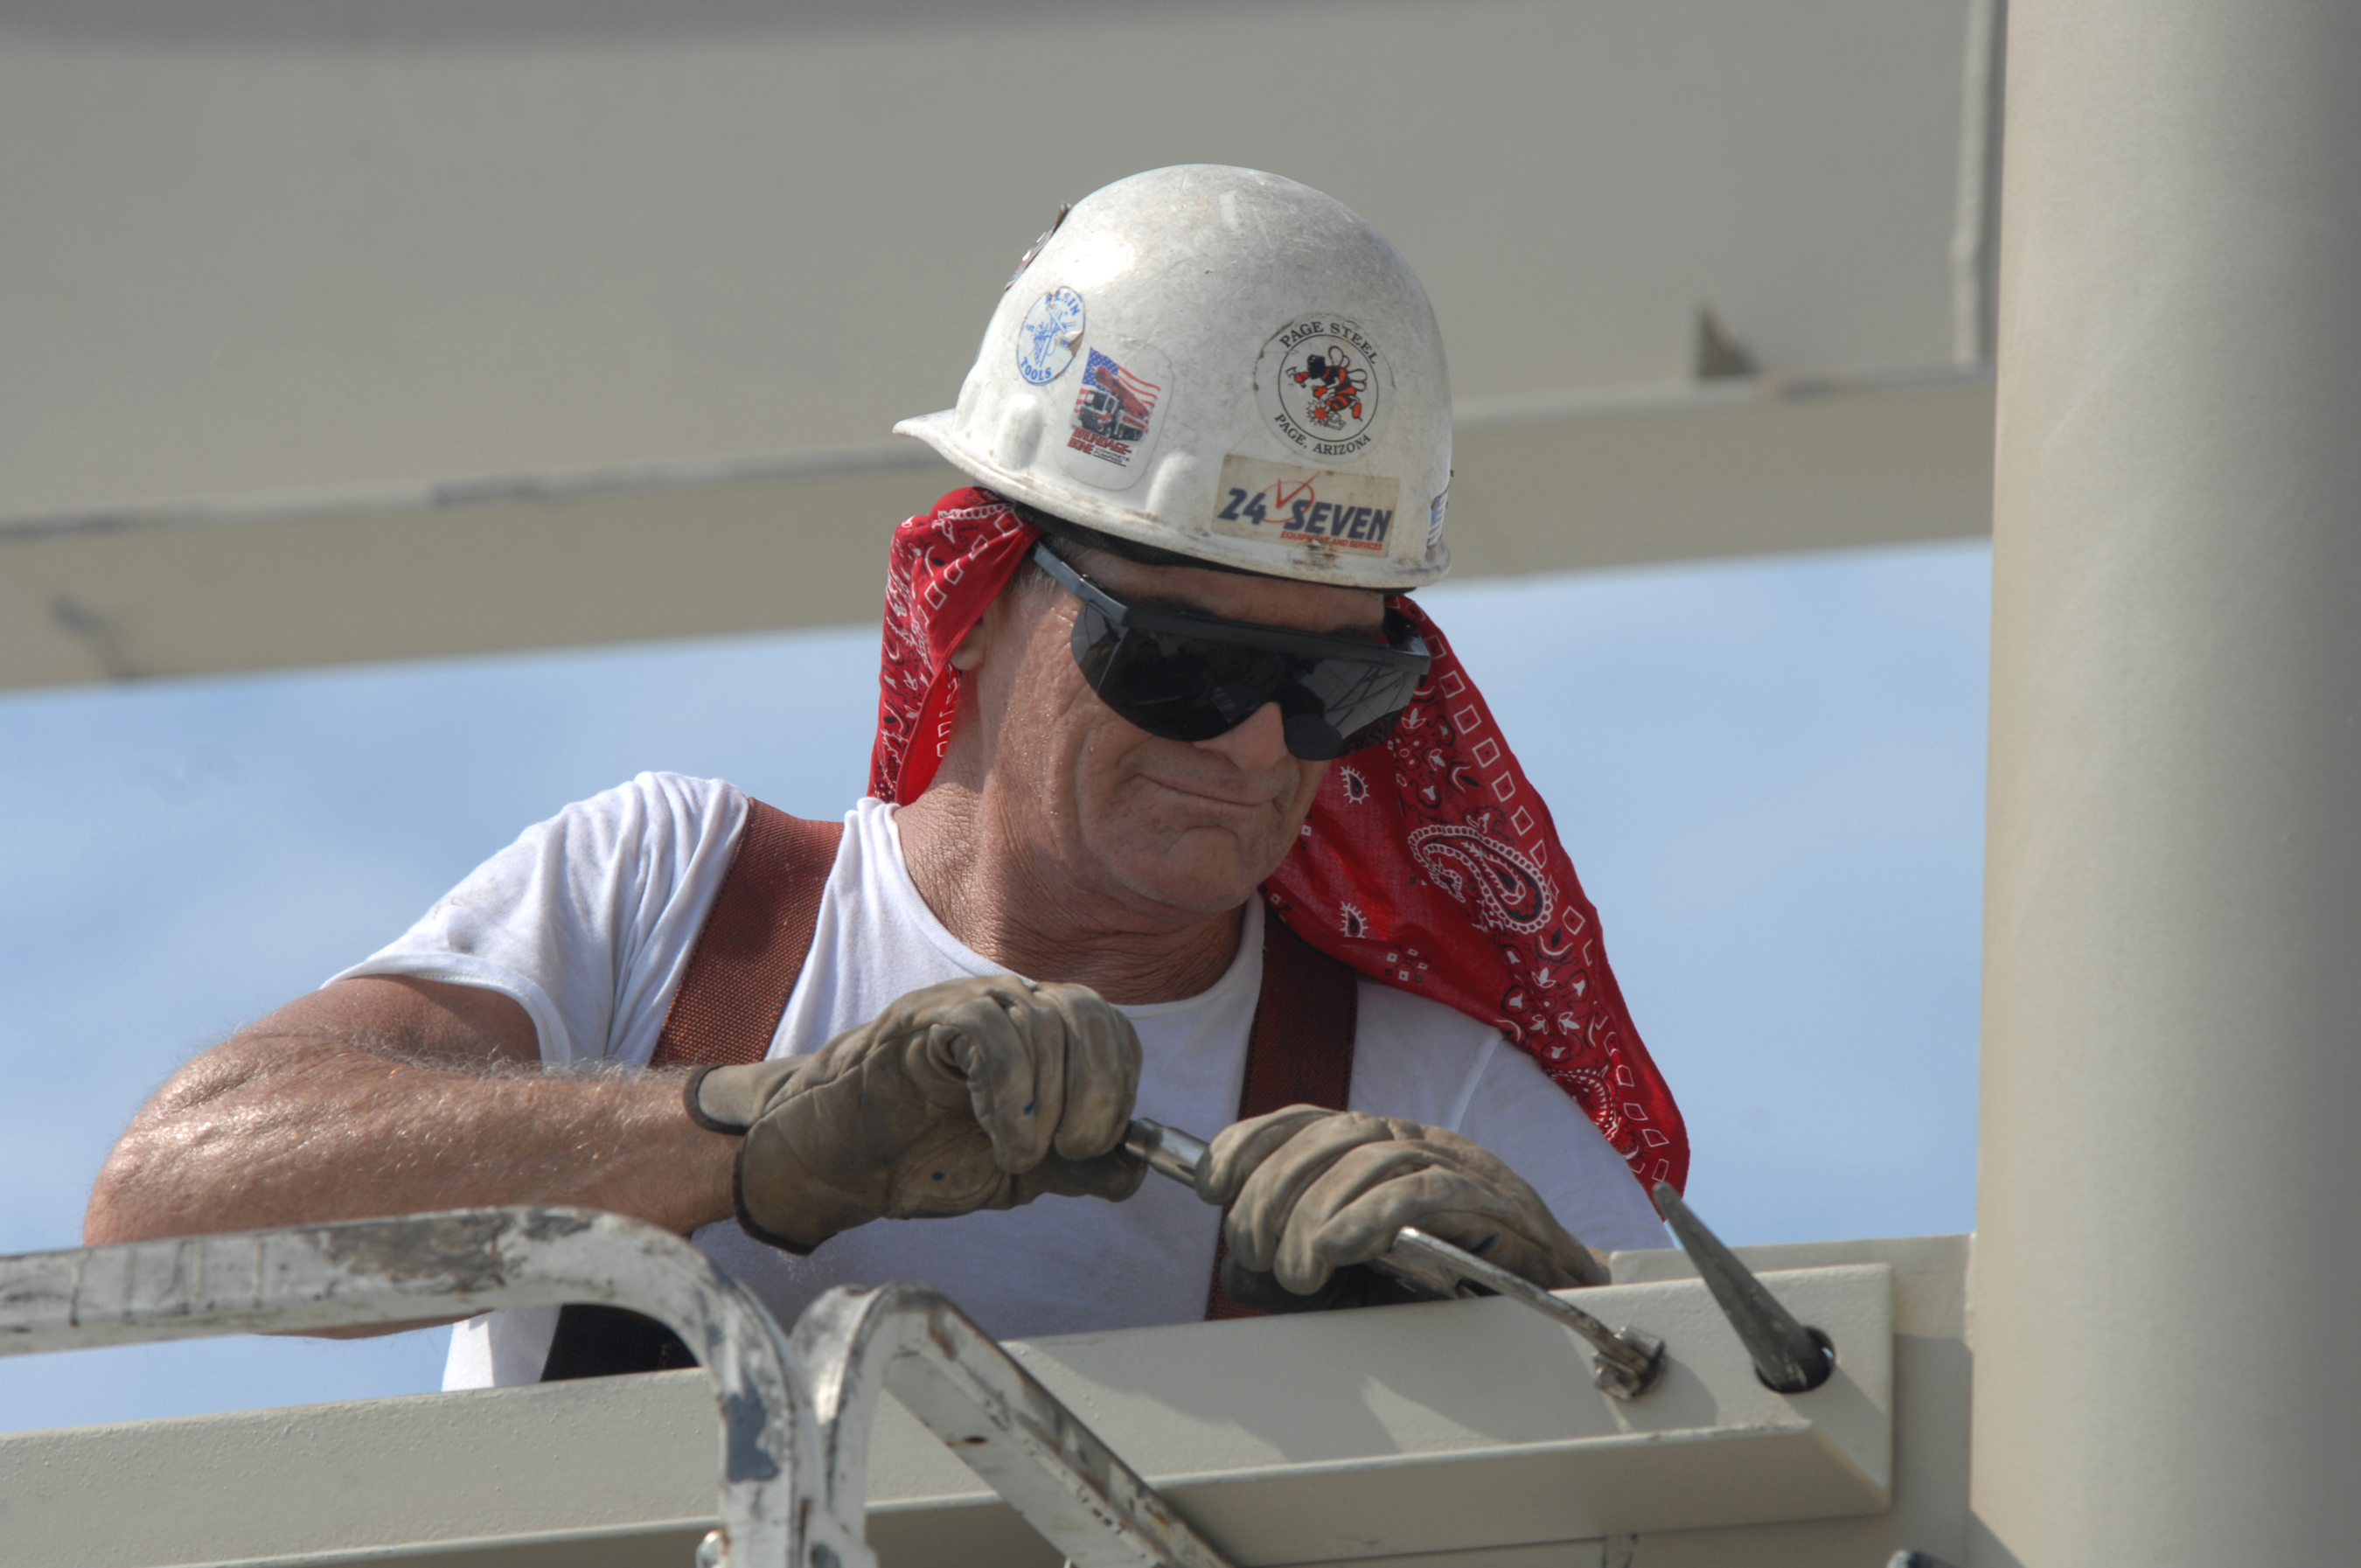 worker wearing safety glasses and helmet